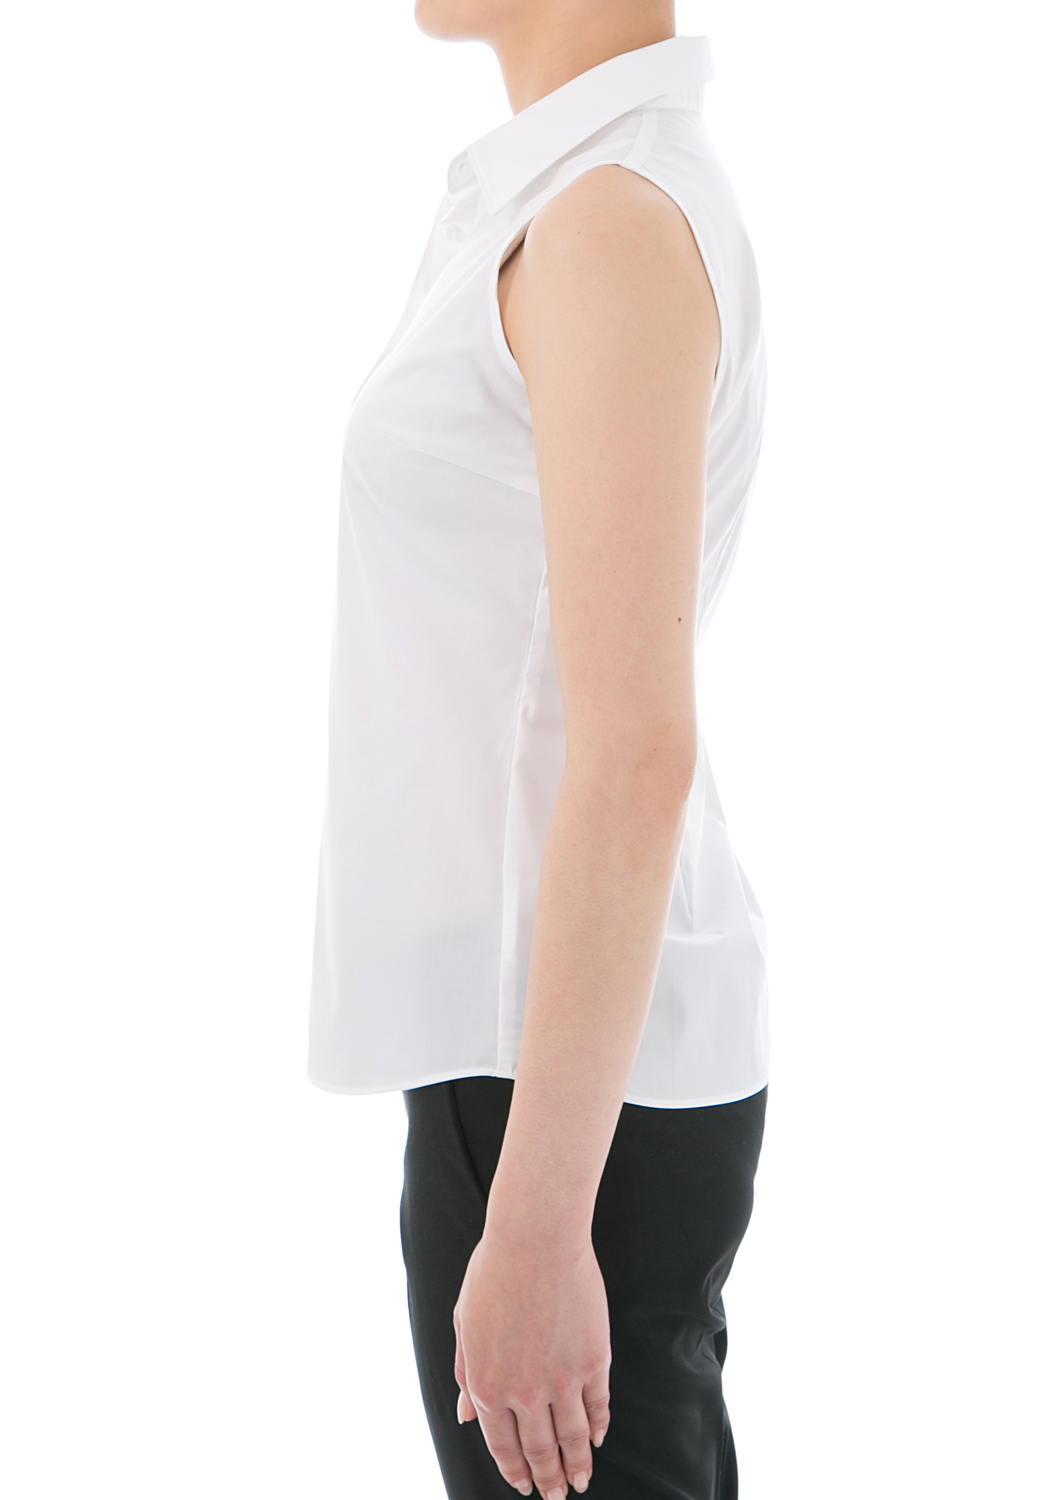 Shirt blouse stretch sleeveless ( white shirt-blouse / women's shirts / classic / sleeveless shirt / plain / Office / stretch / uniform )